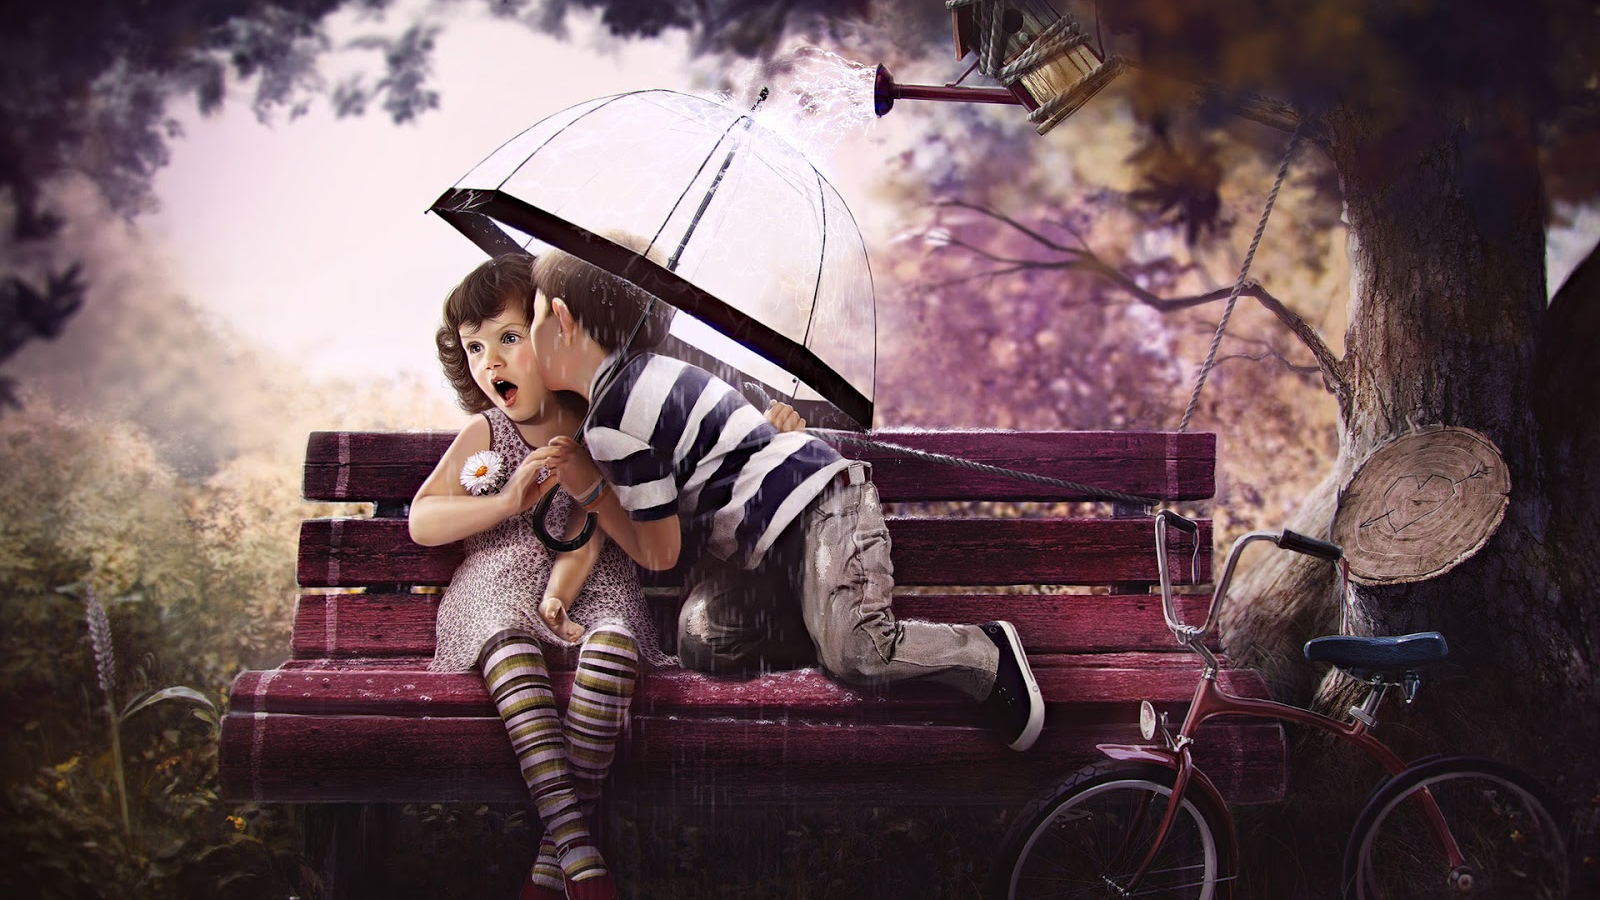 Free Download Cute Baby Girl And Boy Kissing On The Bench Hd Wallpaper Cute Little 1600x1000 For Your Desktop Mobile Tablet Explore 73 Cute Boy Pictures Wallpaper Hd Boys